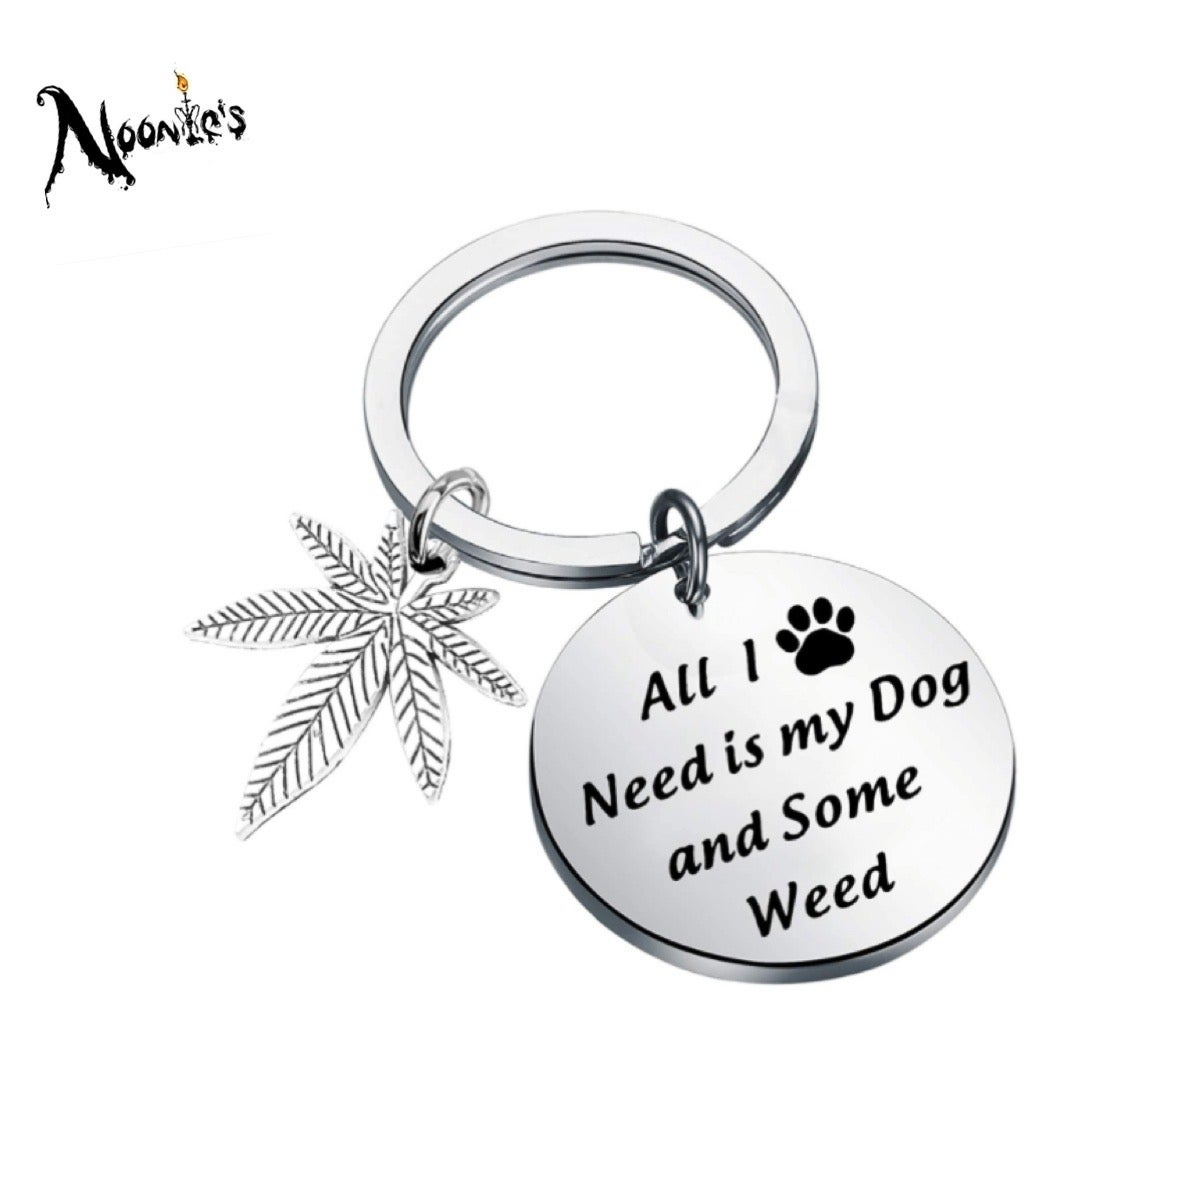 Image of Best of both worlds keychain